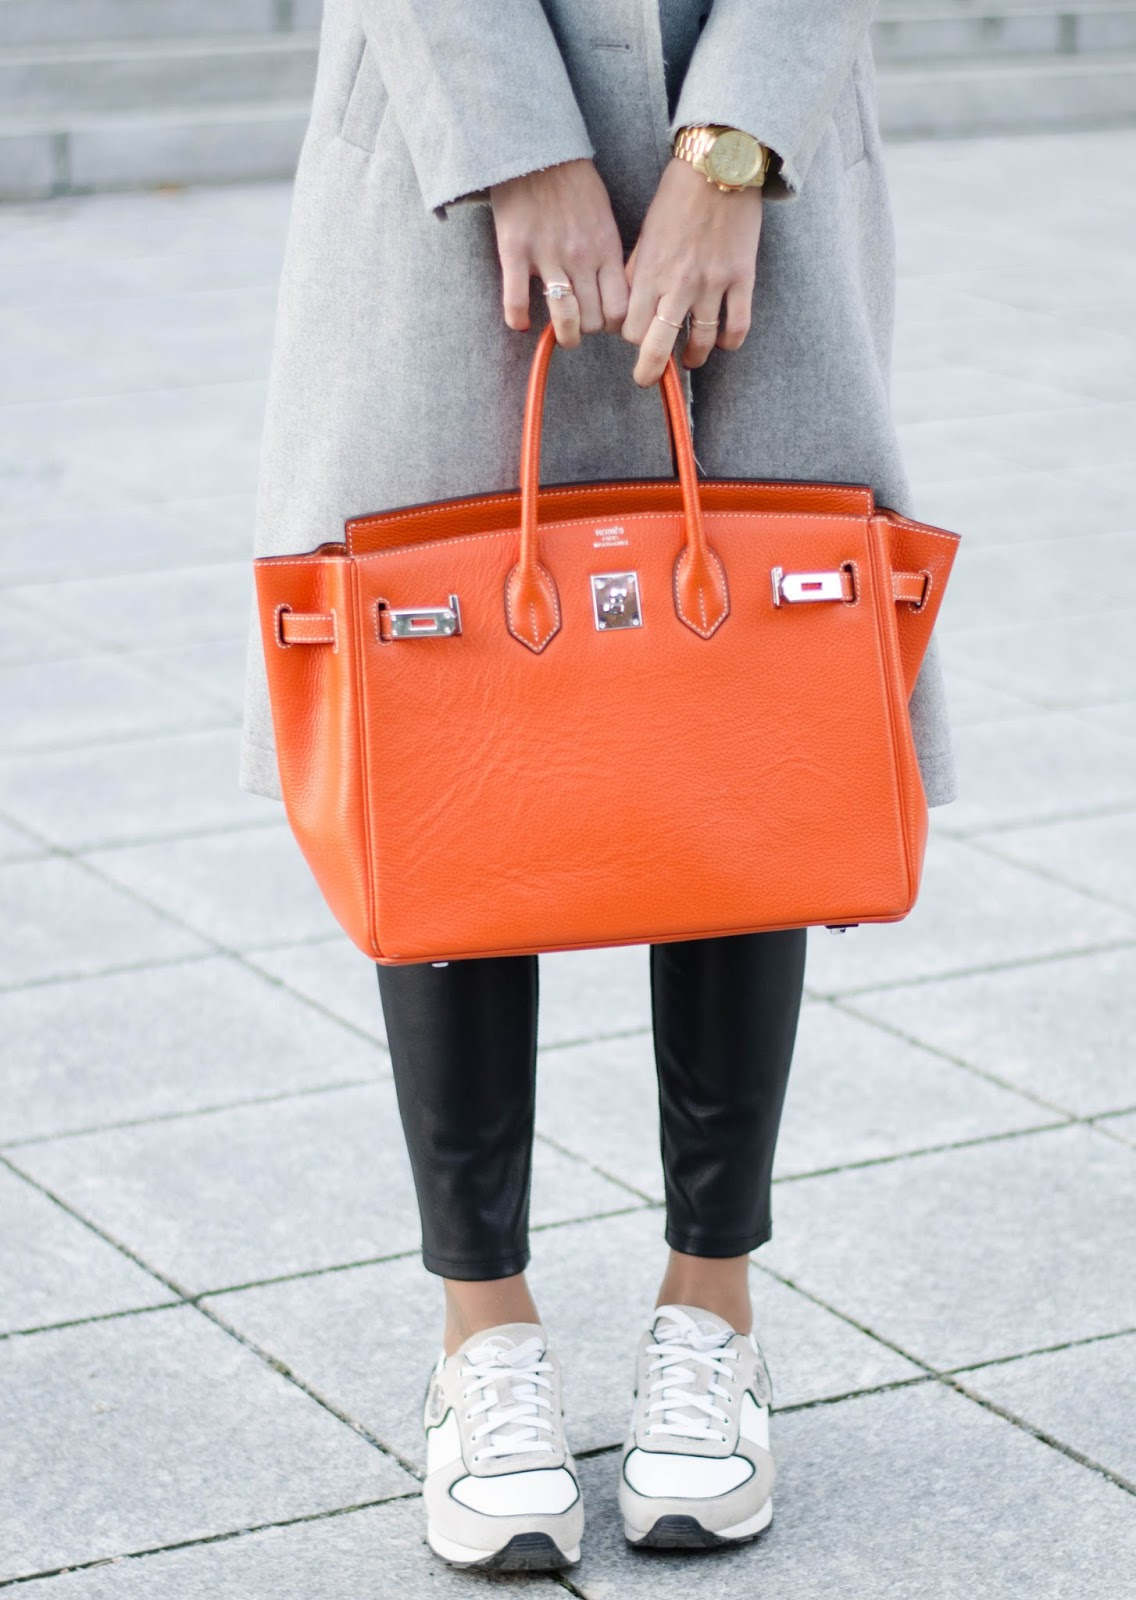 kristjaana mere orange hermes birkin bag leather pants white sneakers winter style